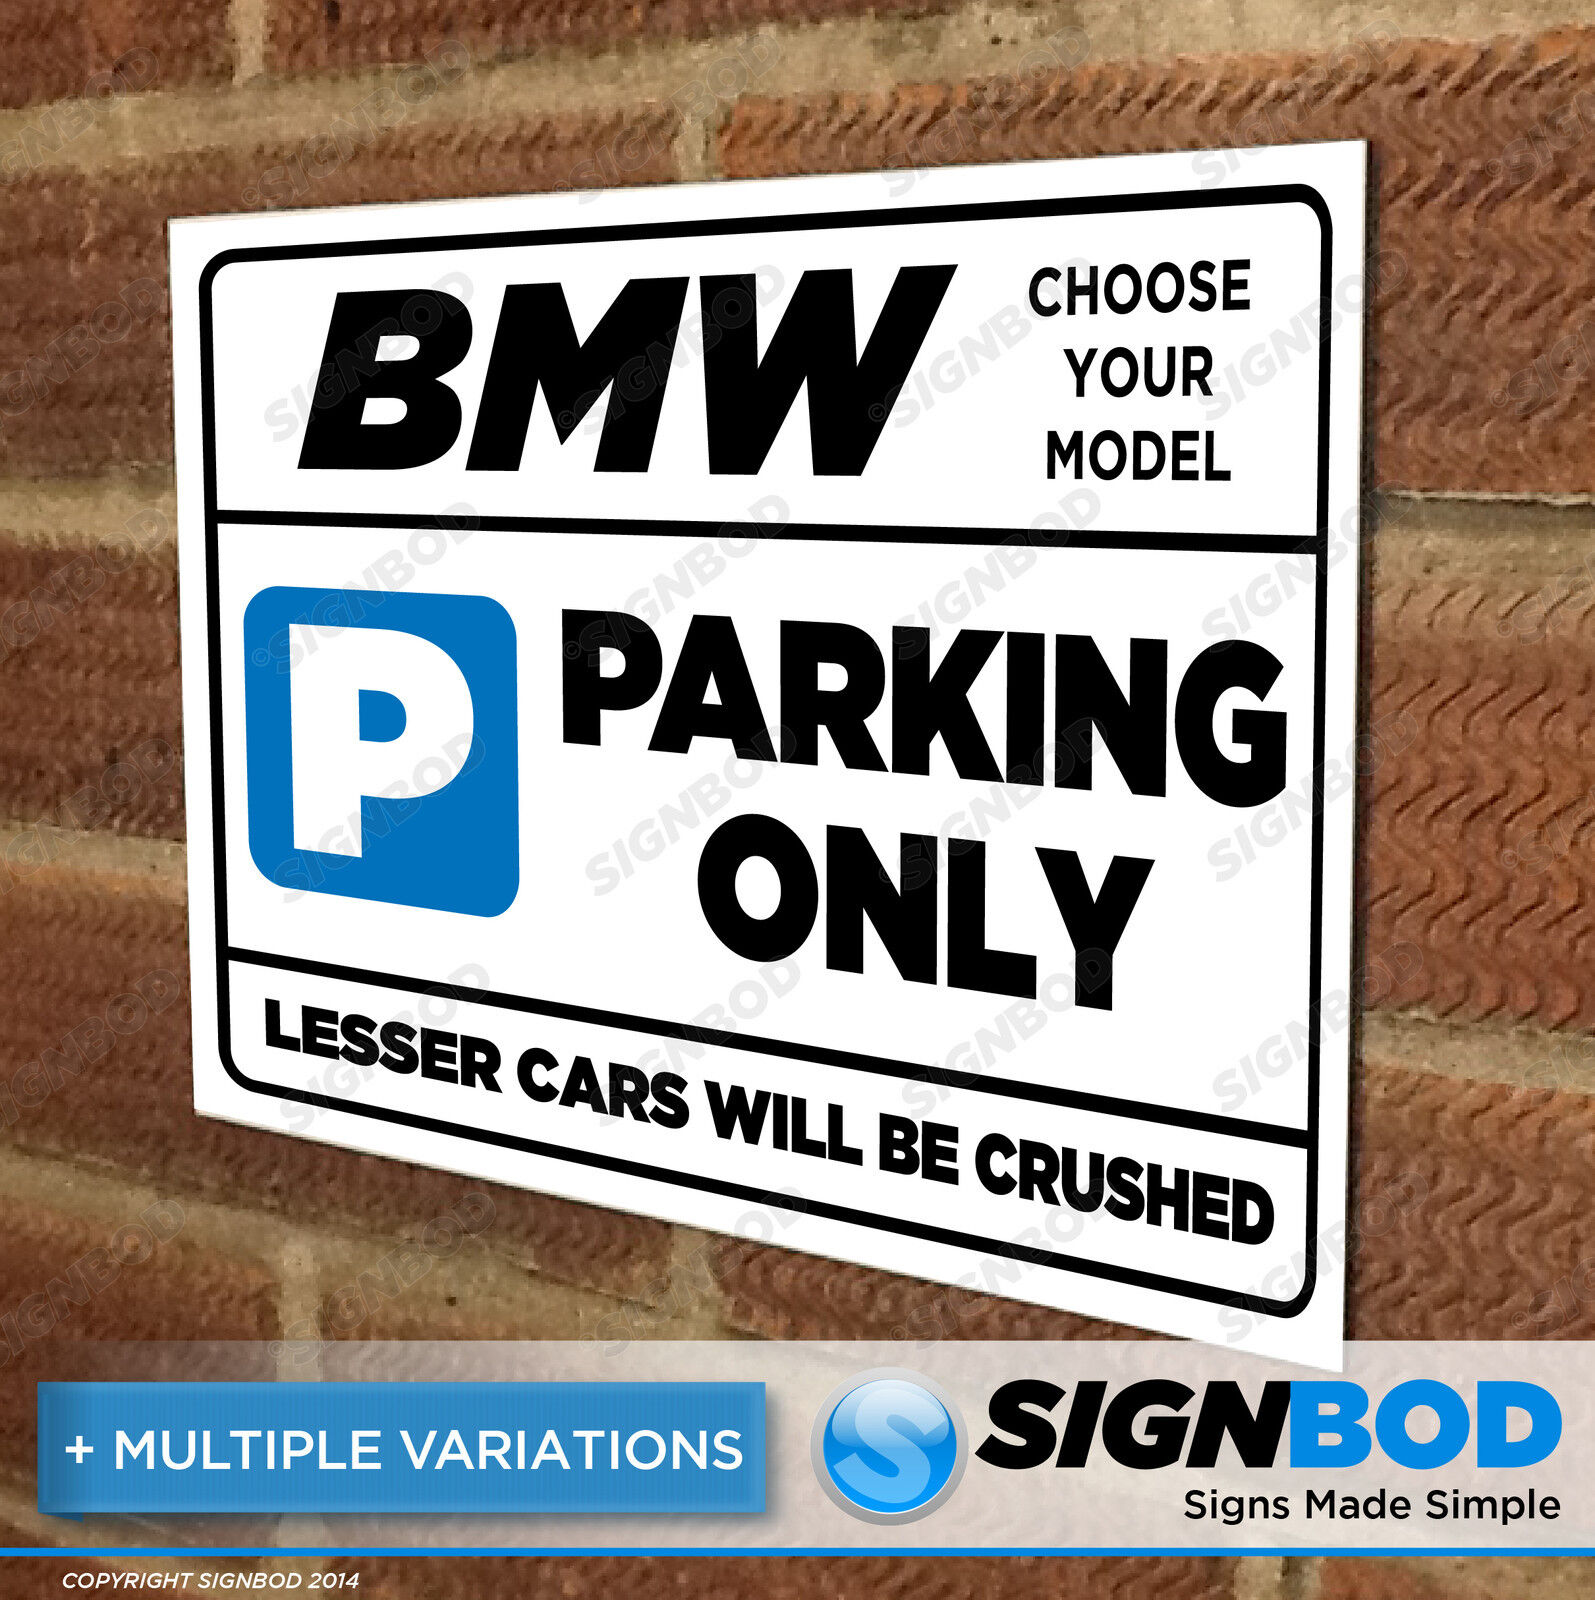 Furniture Signs Décor Restaurant Catering Business - Bmw parking only signs